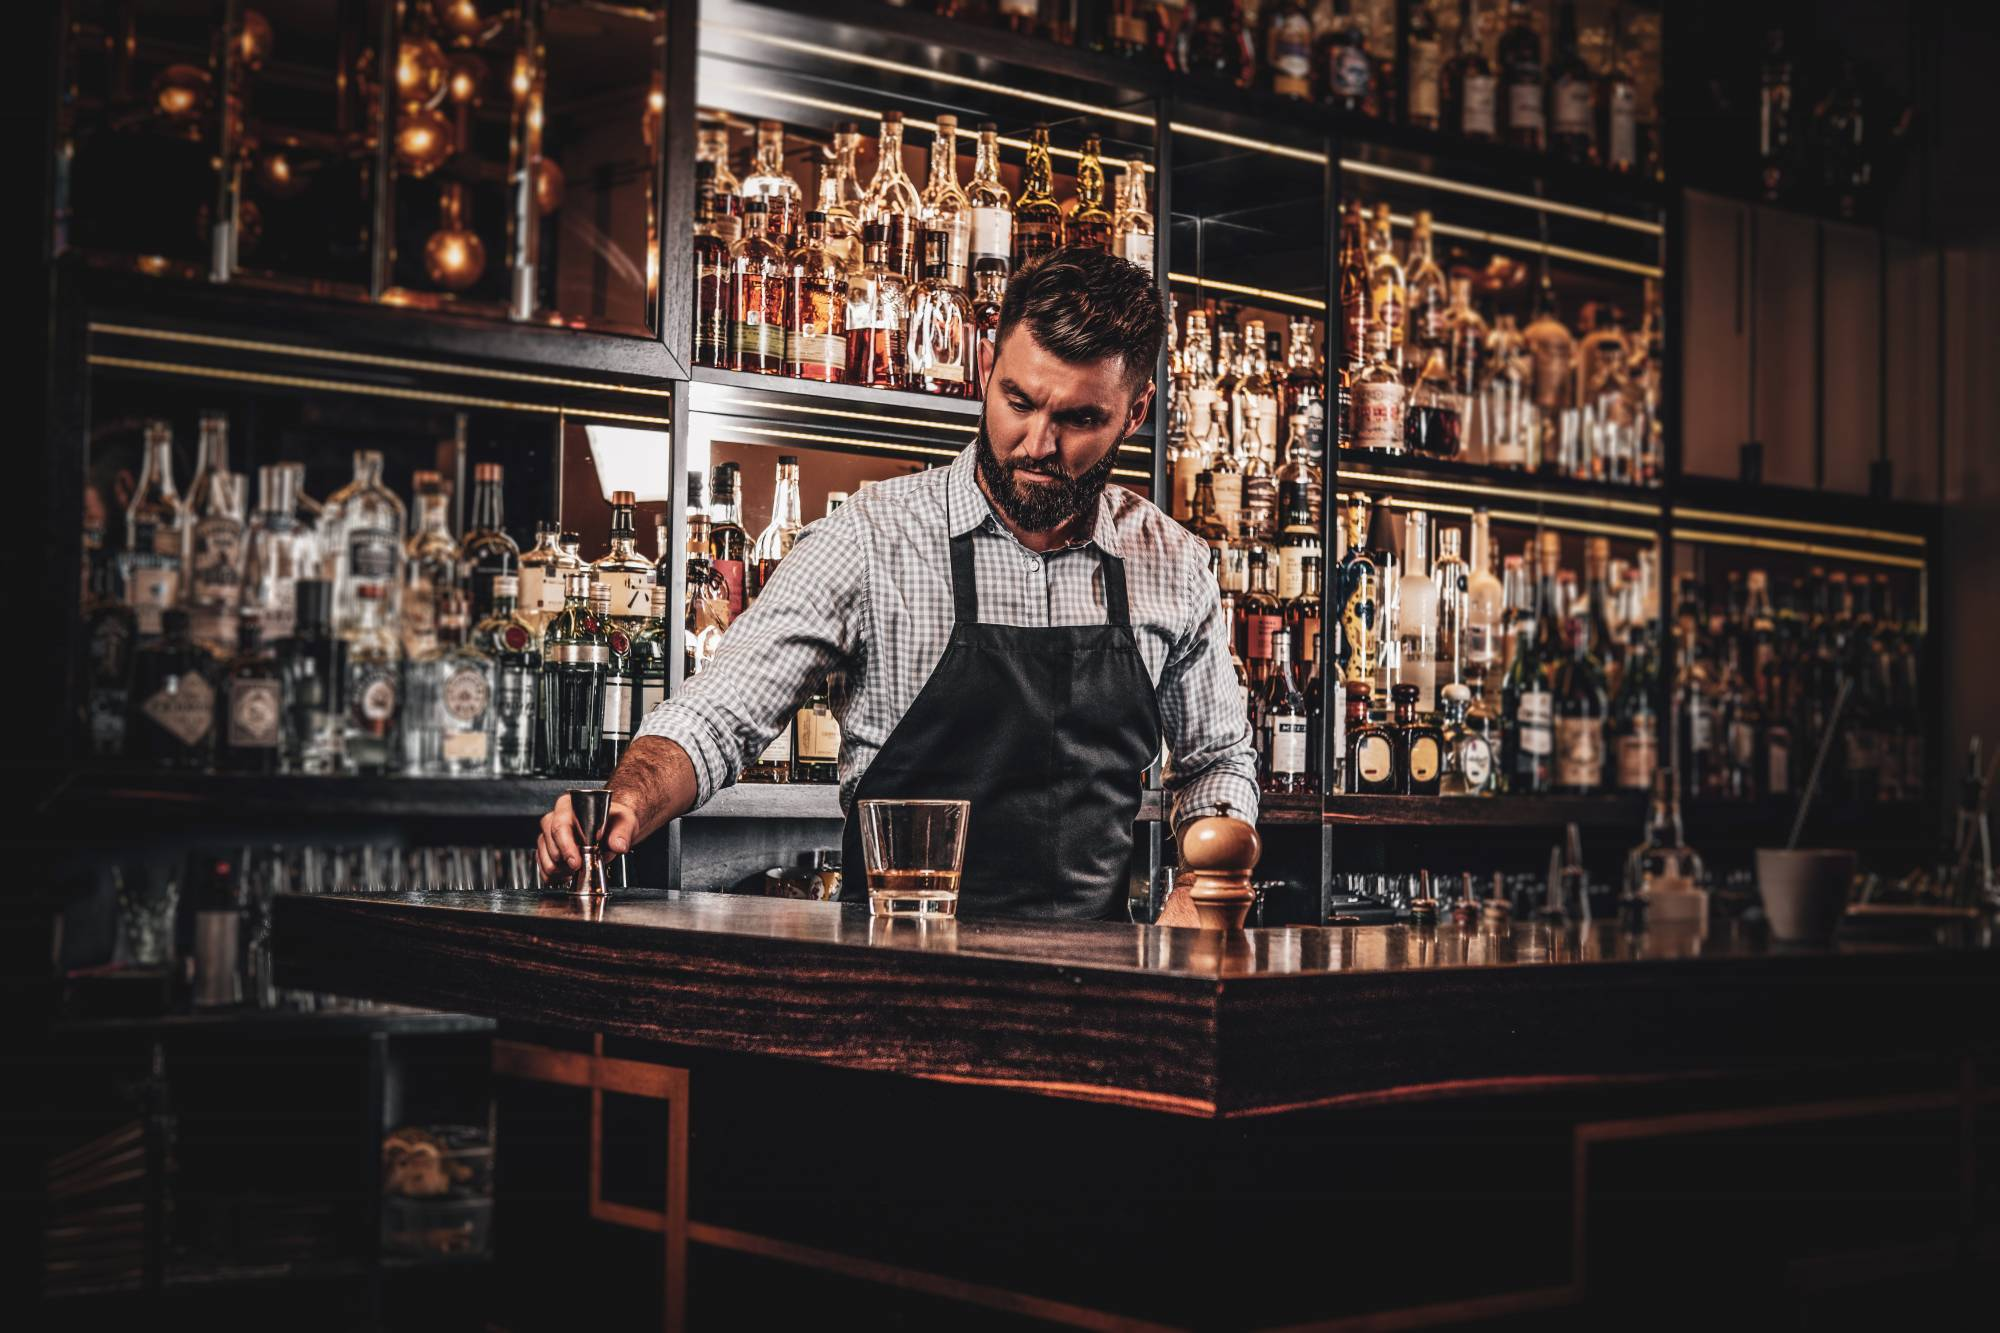 attractive barmen is prepairing drinks SJ8AHVA